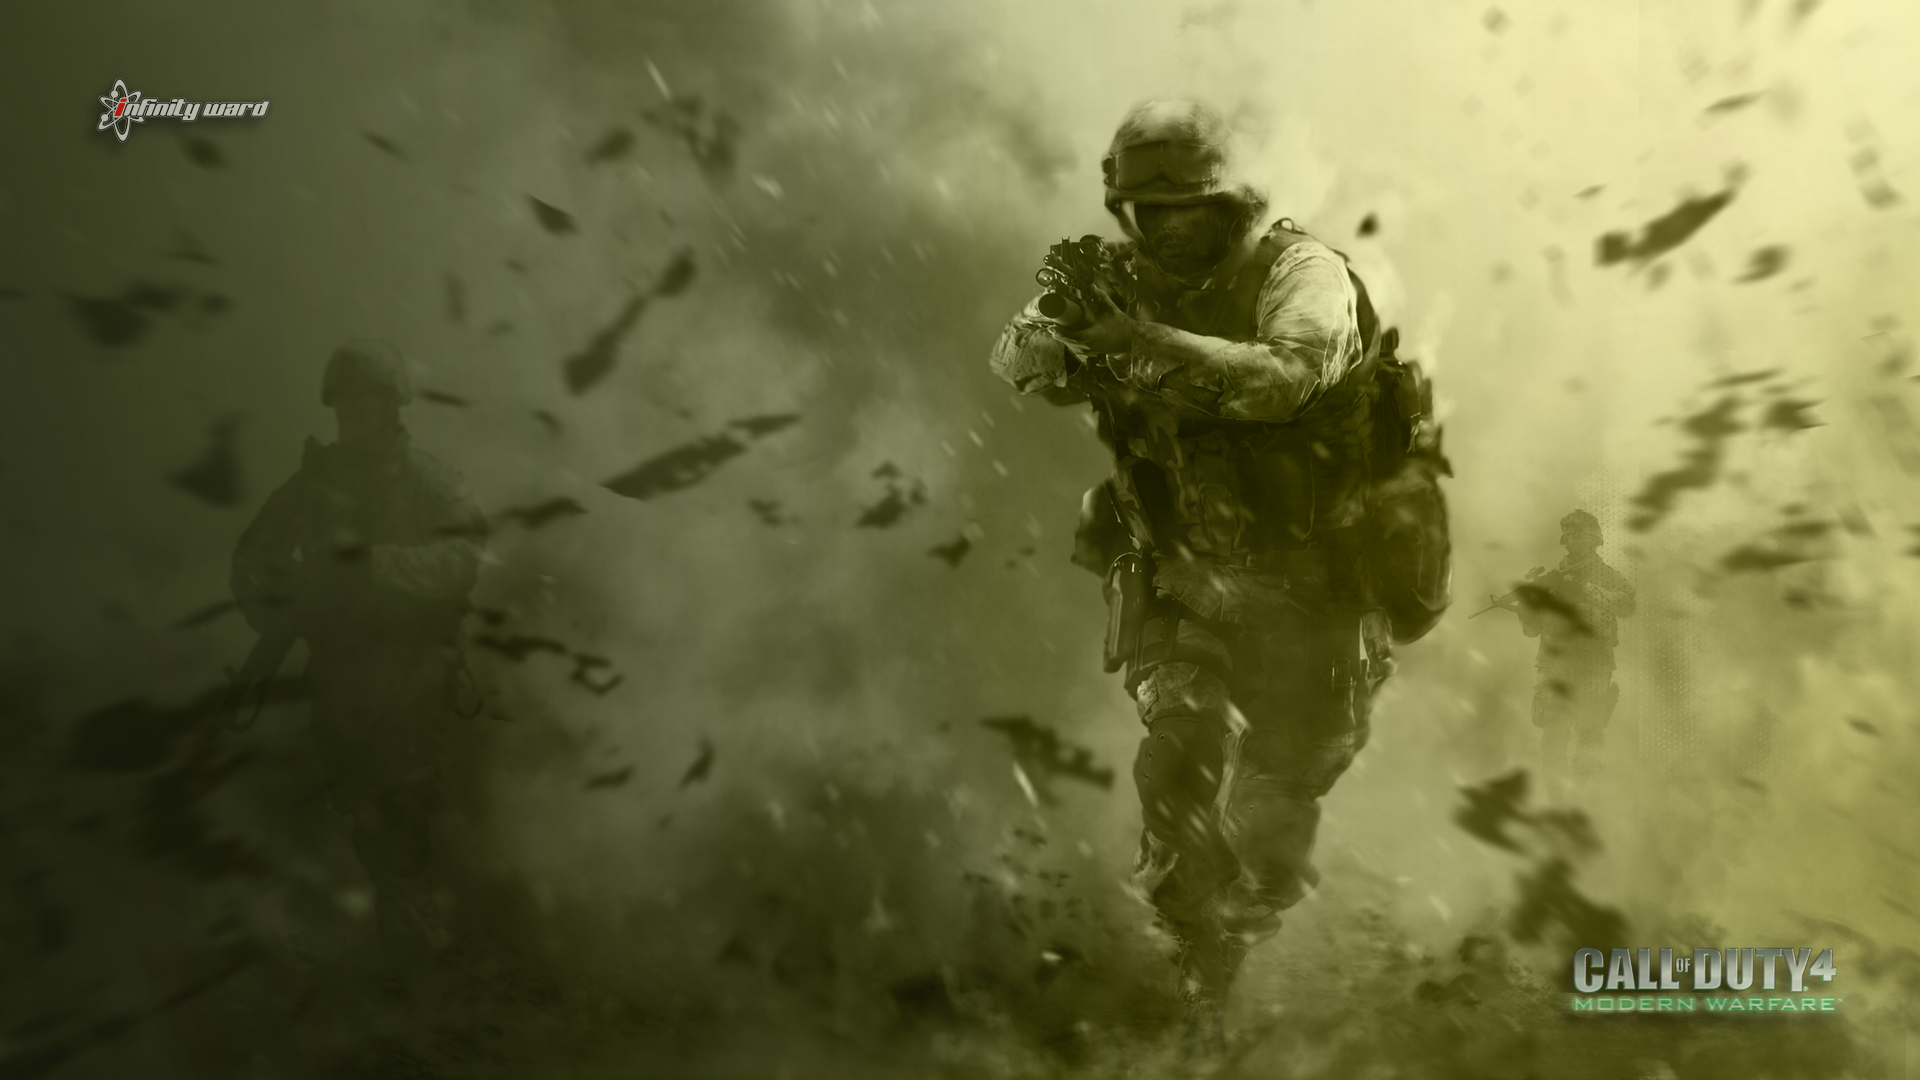 Call Of Duty 4 Wallpaper 28159.png